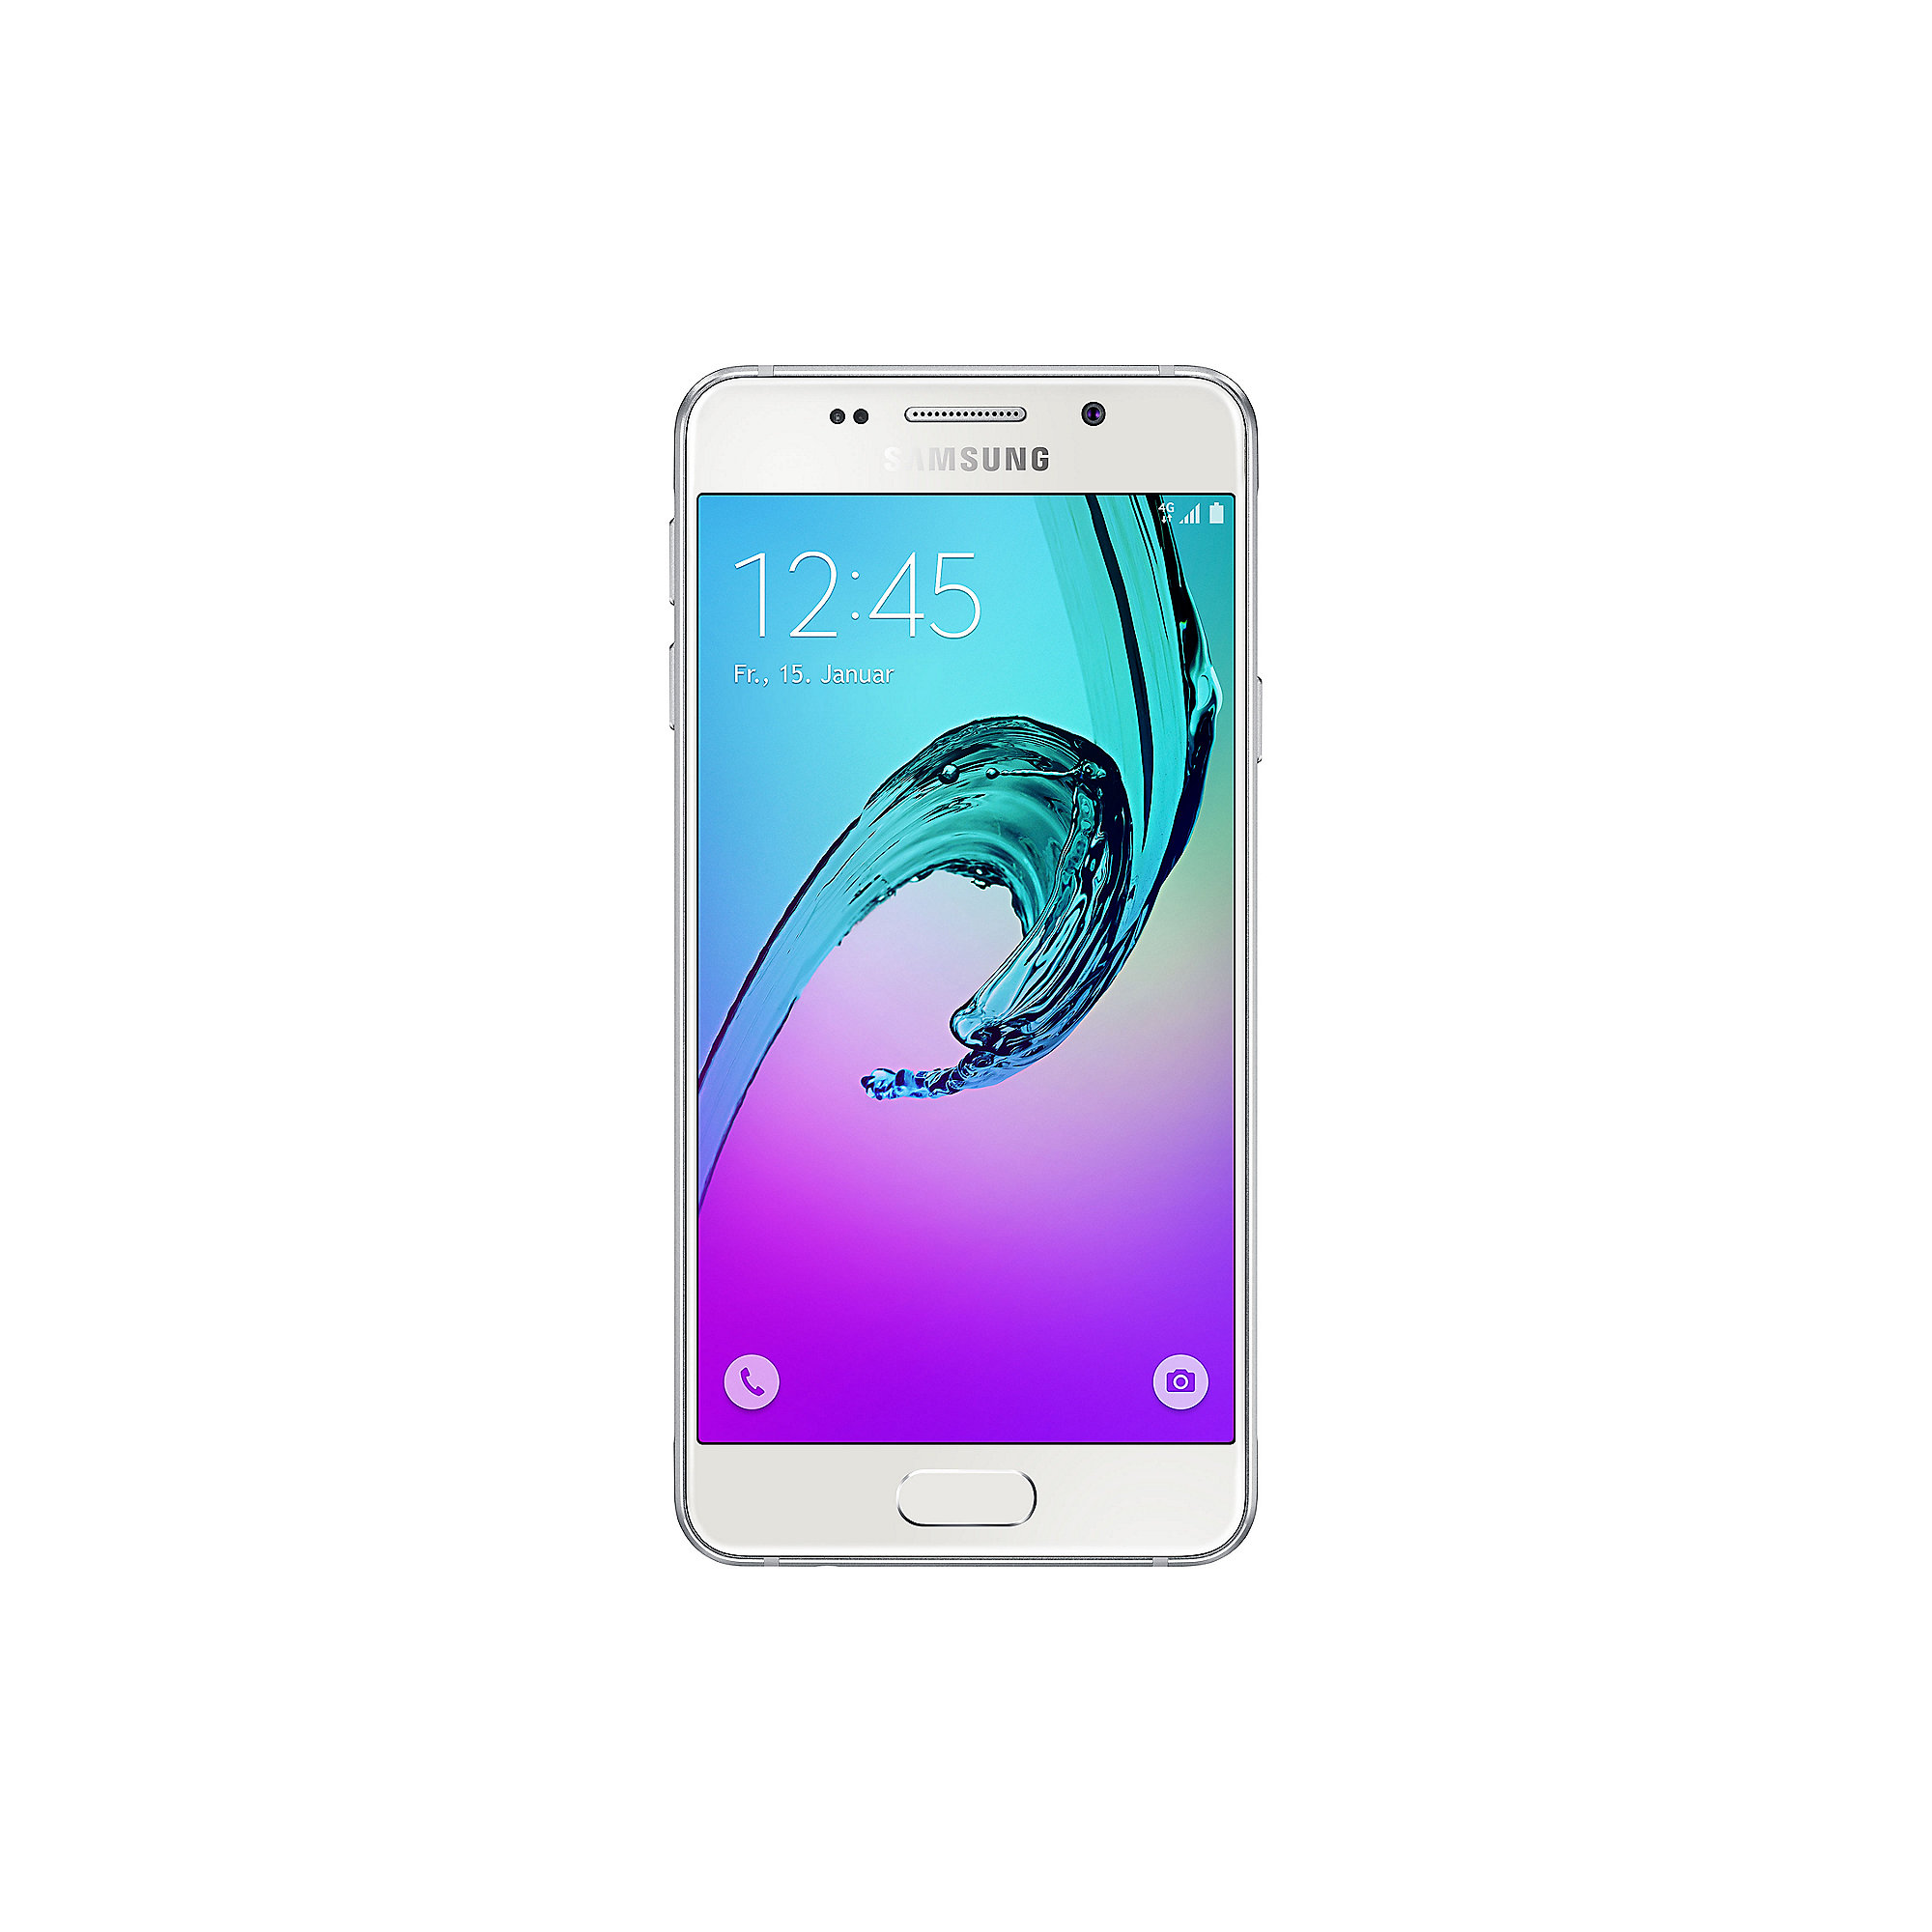 Samsung GALAXY A3 (2016) A310F white Android Smartphone weiß